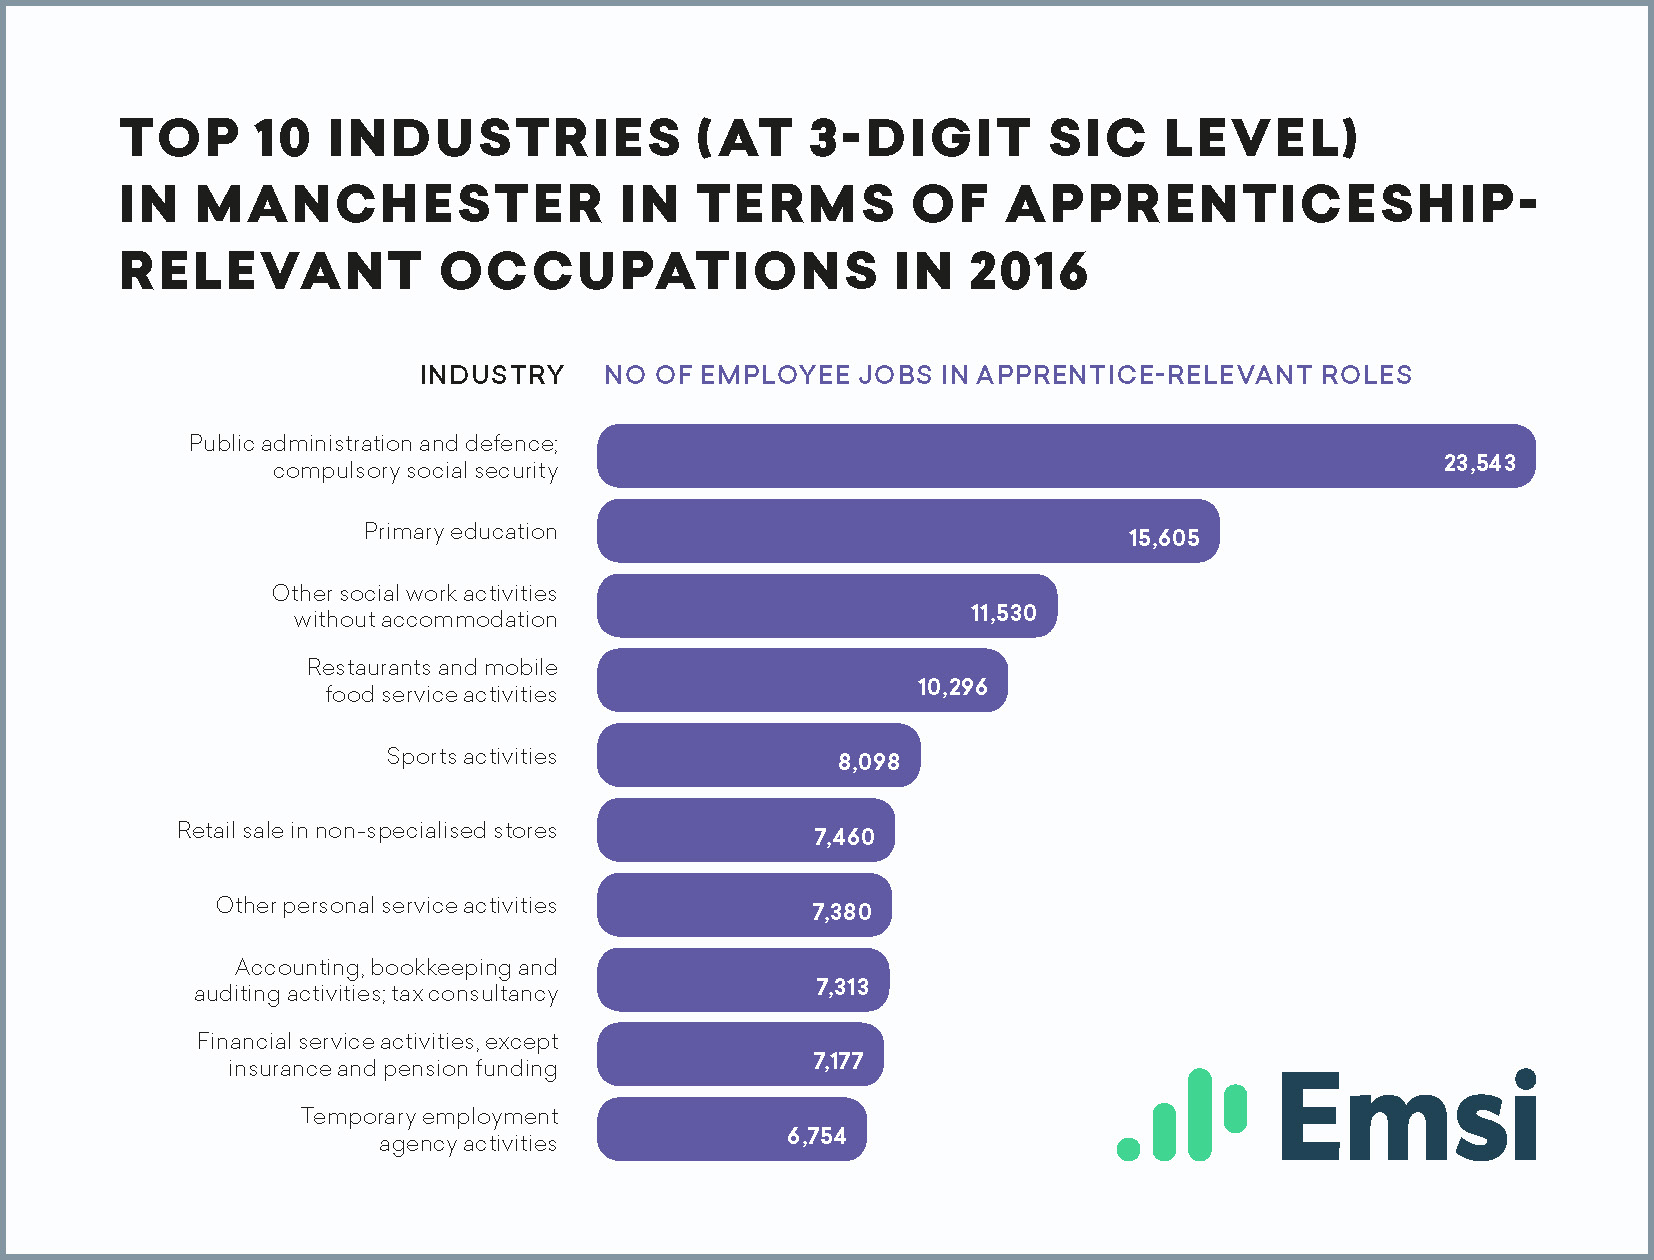 Top 10 industries in Manchester in terms of apprenticeship-relevant occupations